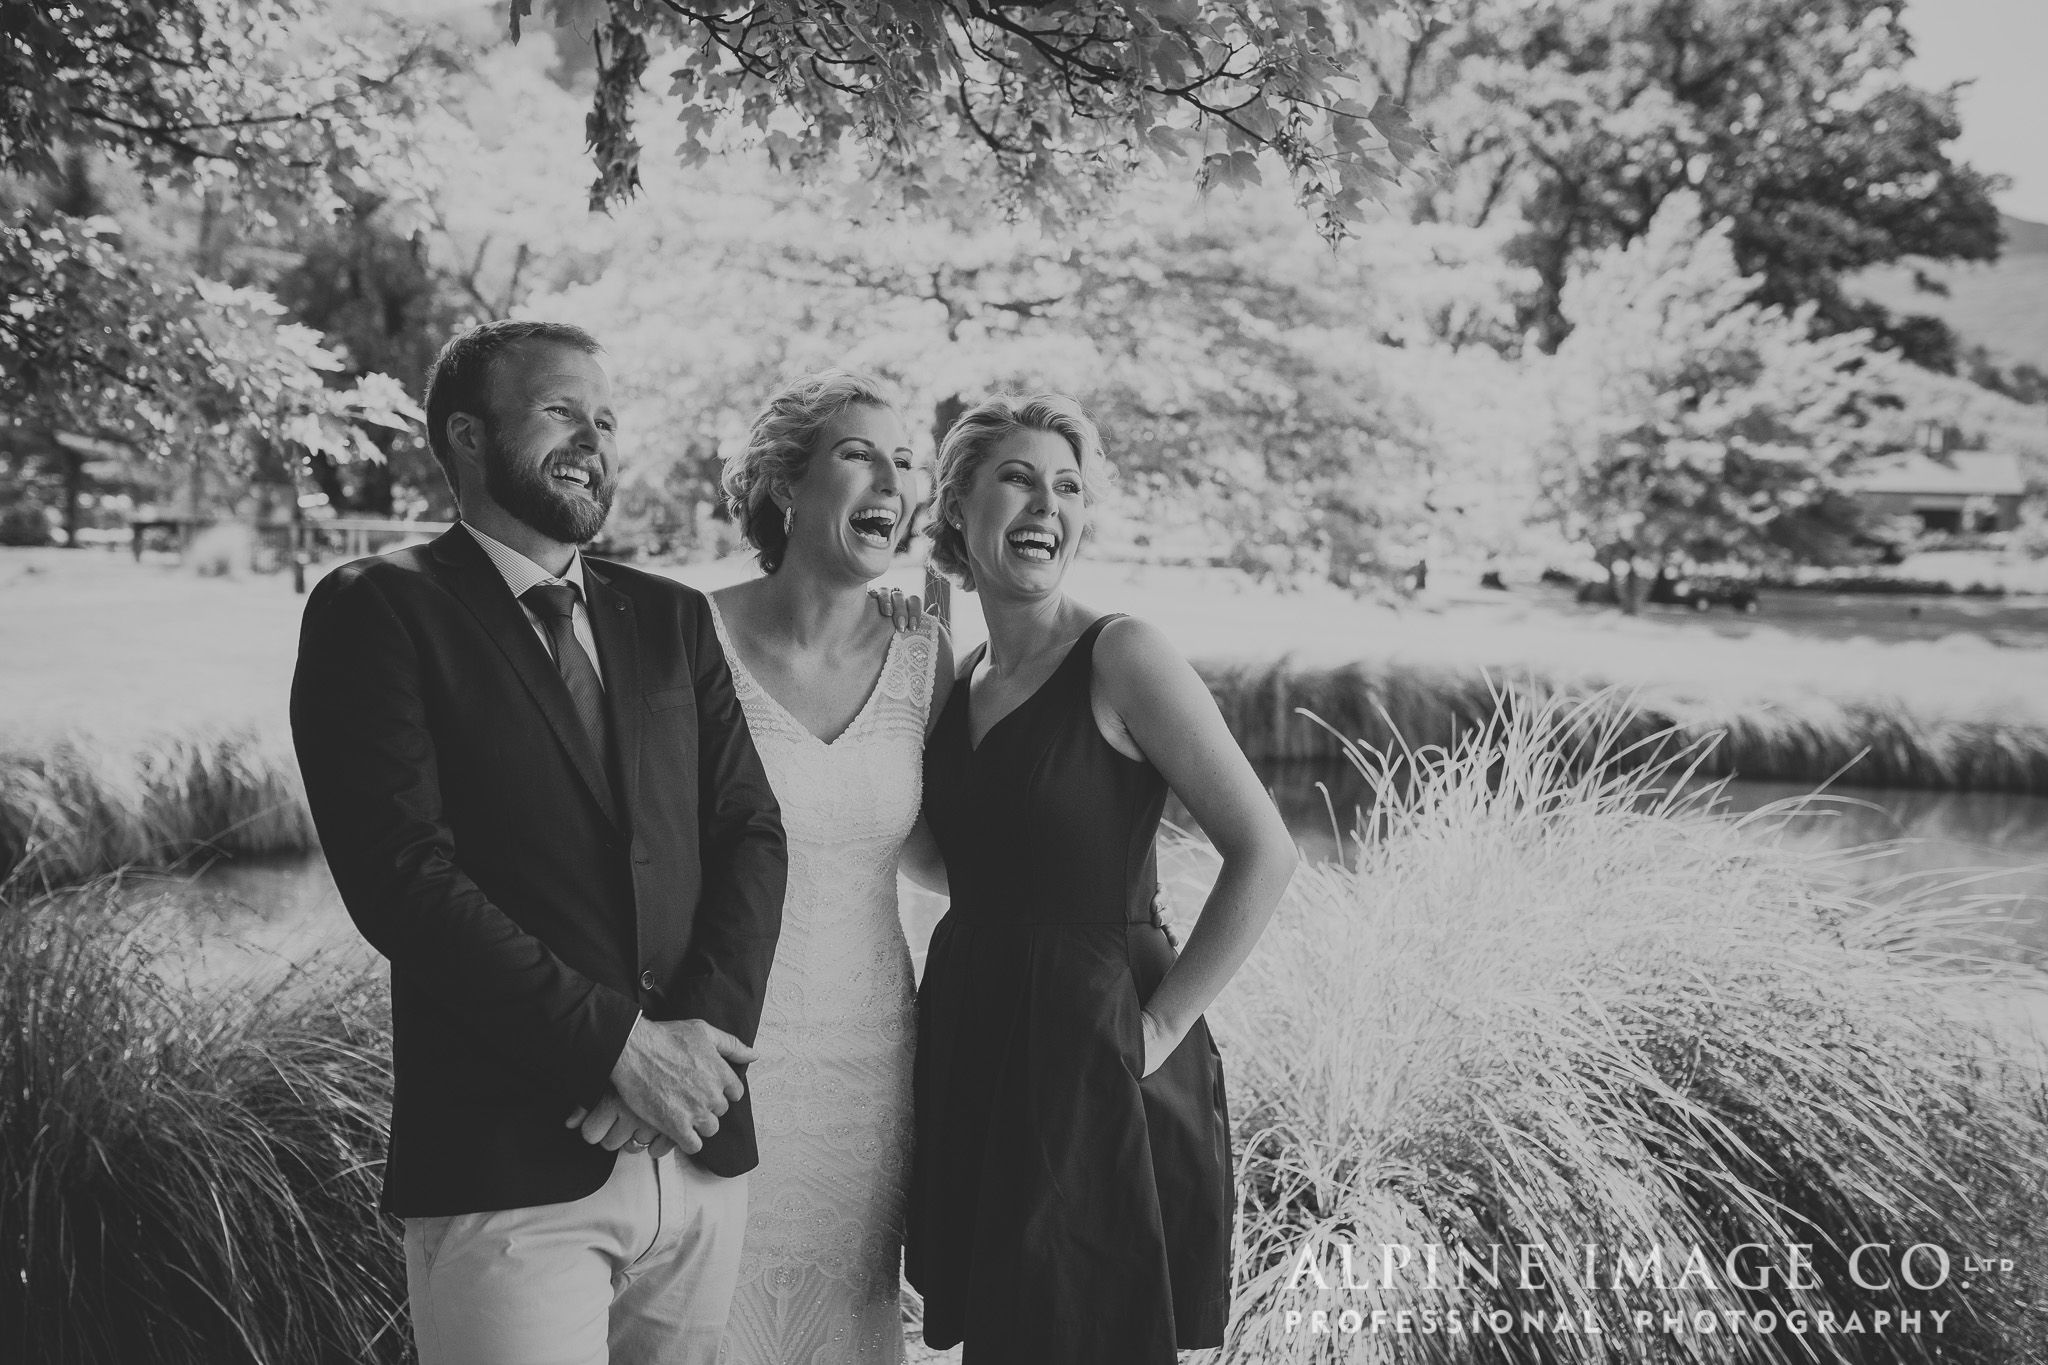 Beautiful candid moments during a wedding ceremony. New Zealand Wedding Photography by Alpine Image Company